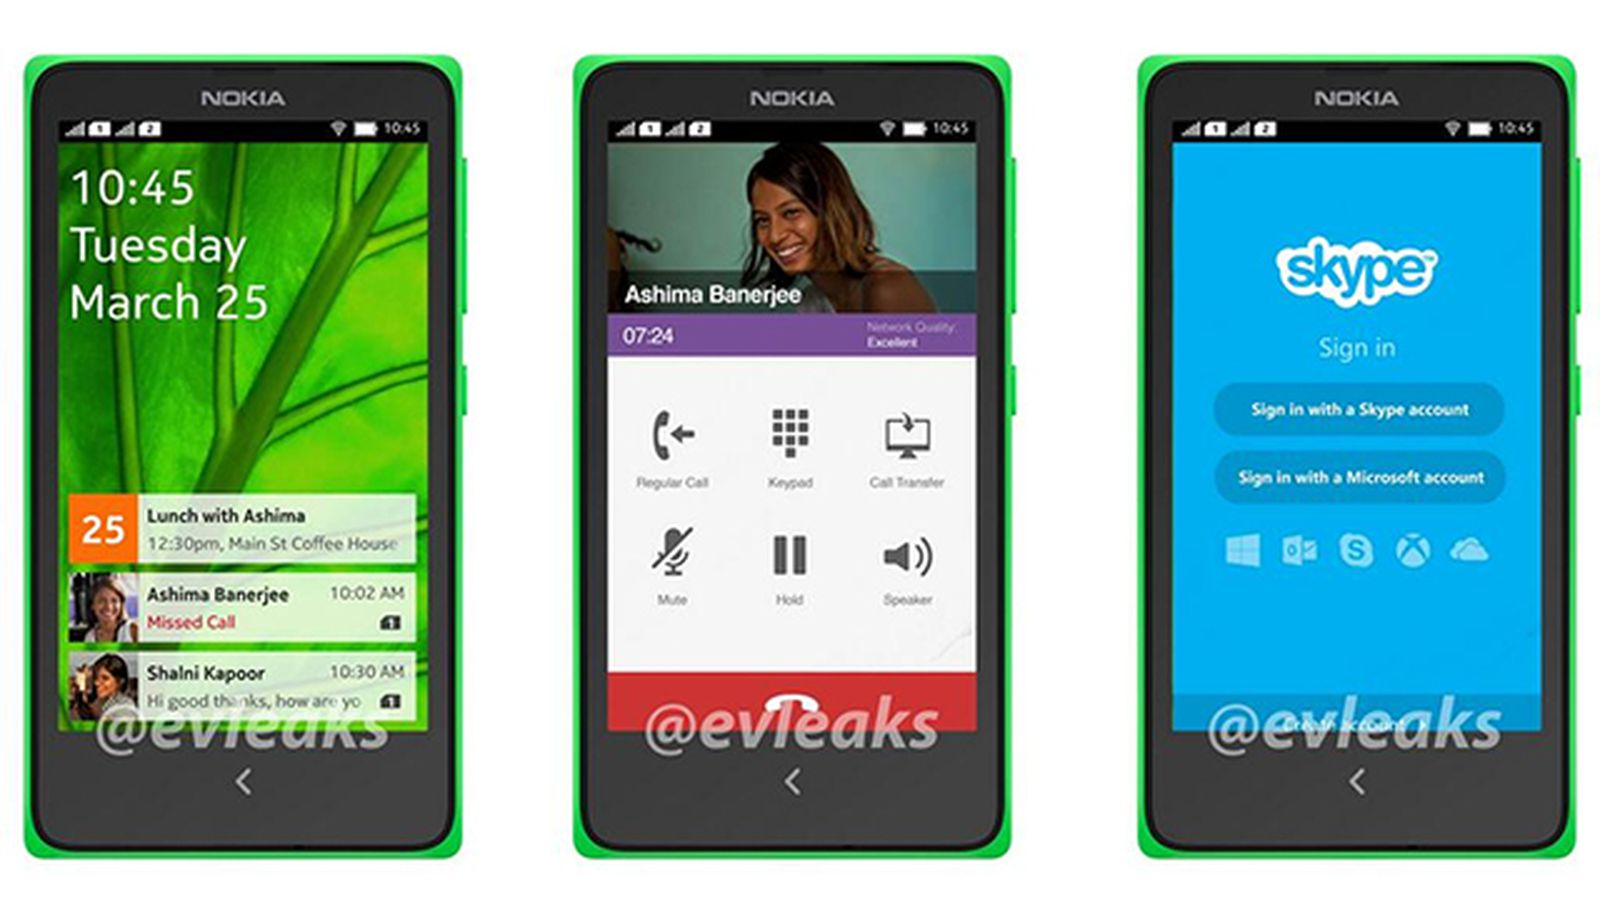 Nokia's Android phone UI revealed in leaked photos